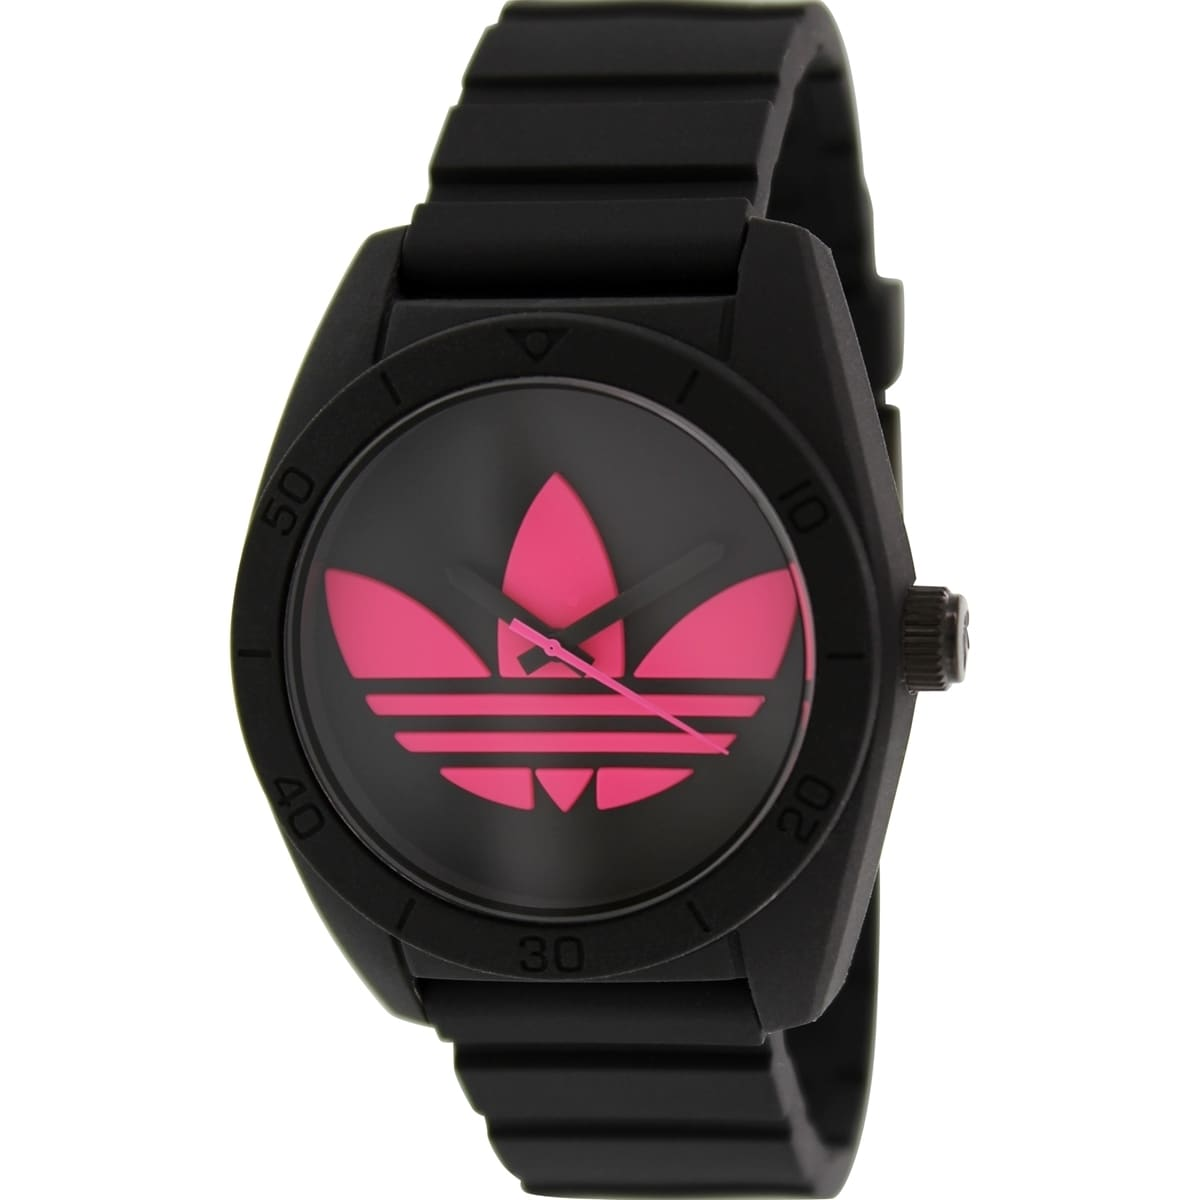 Adidas Men's Santiago ADH2878 Black Silicone Quartz Watch...